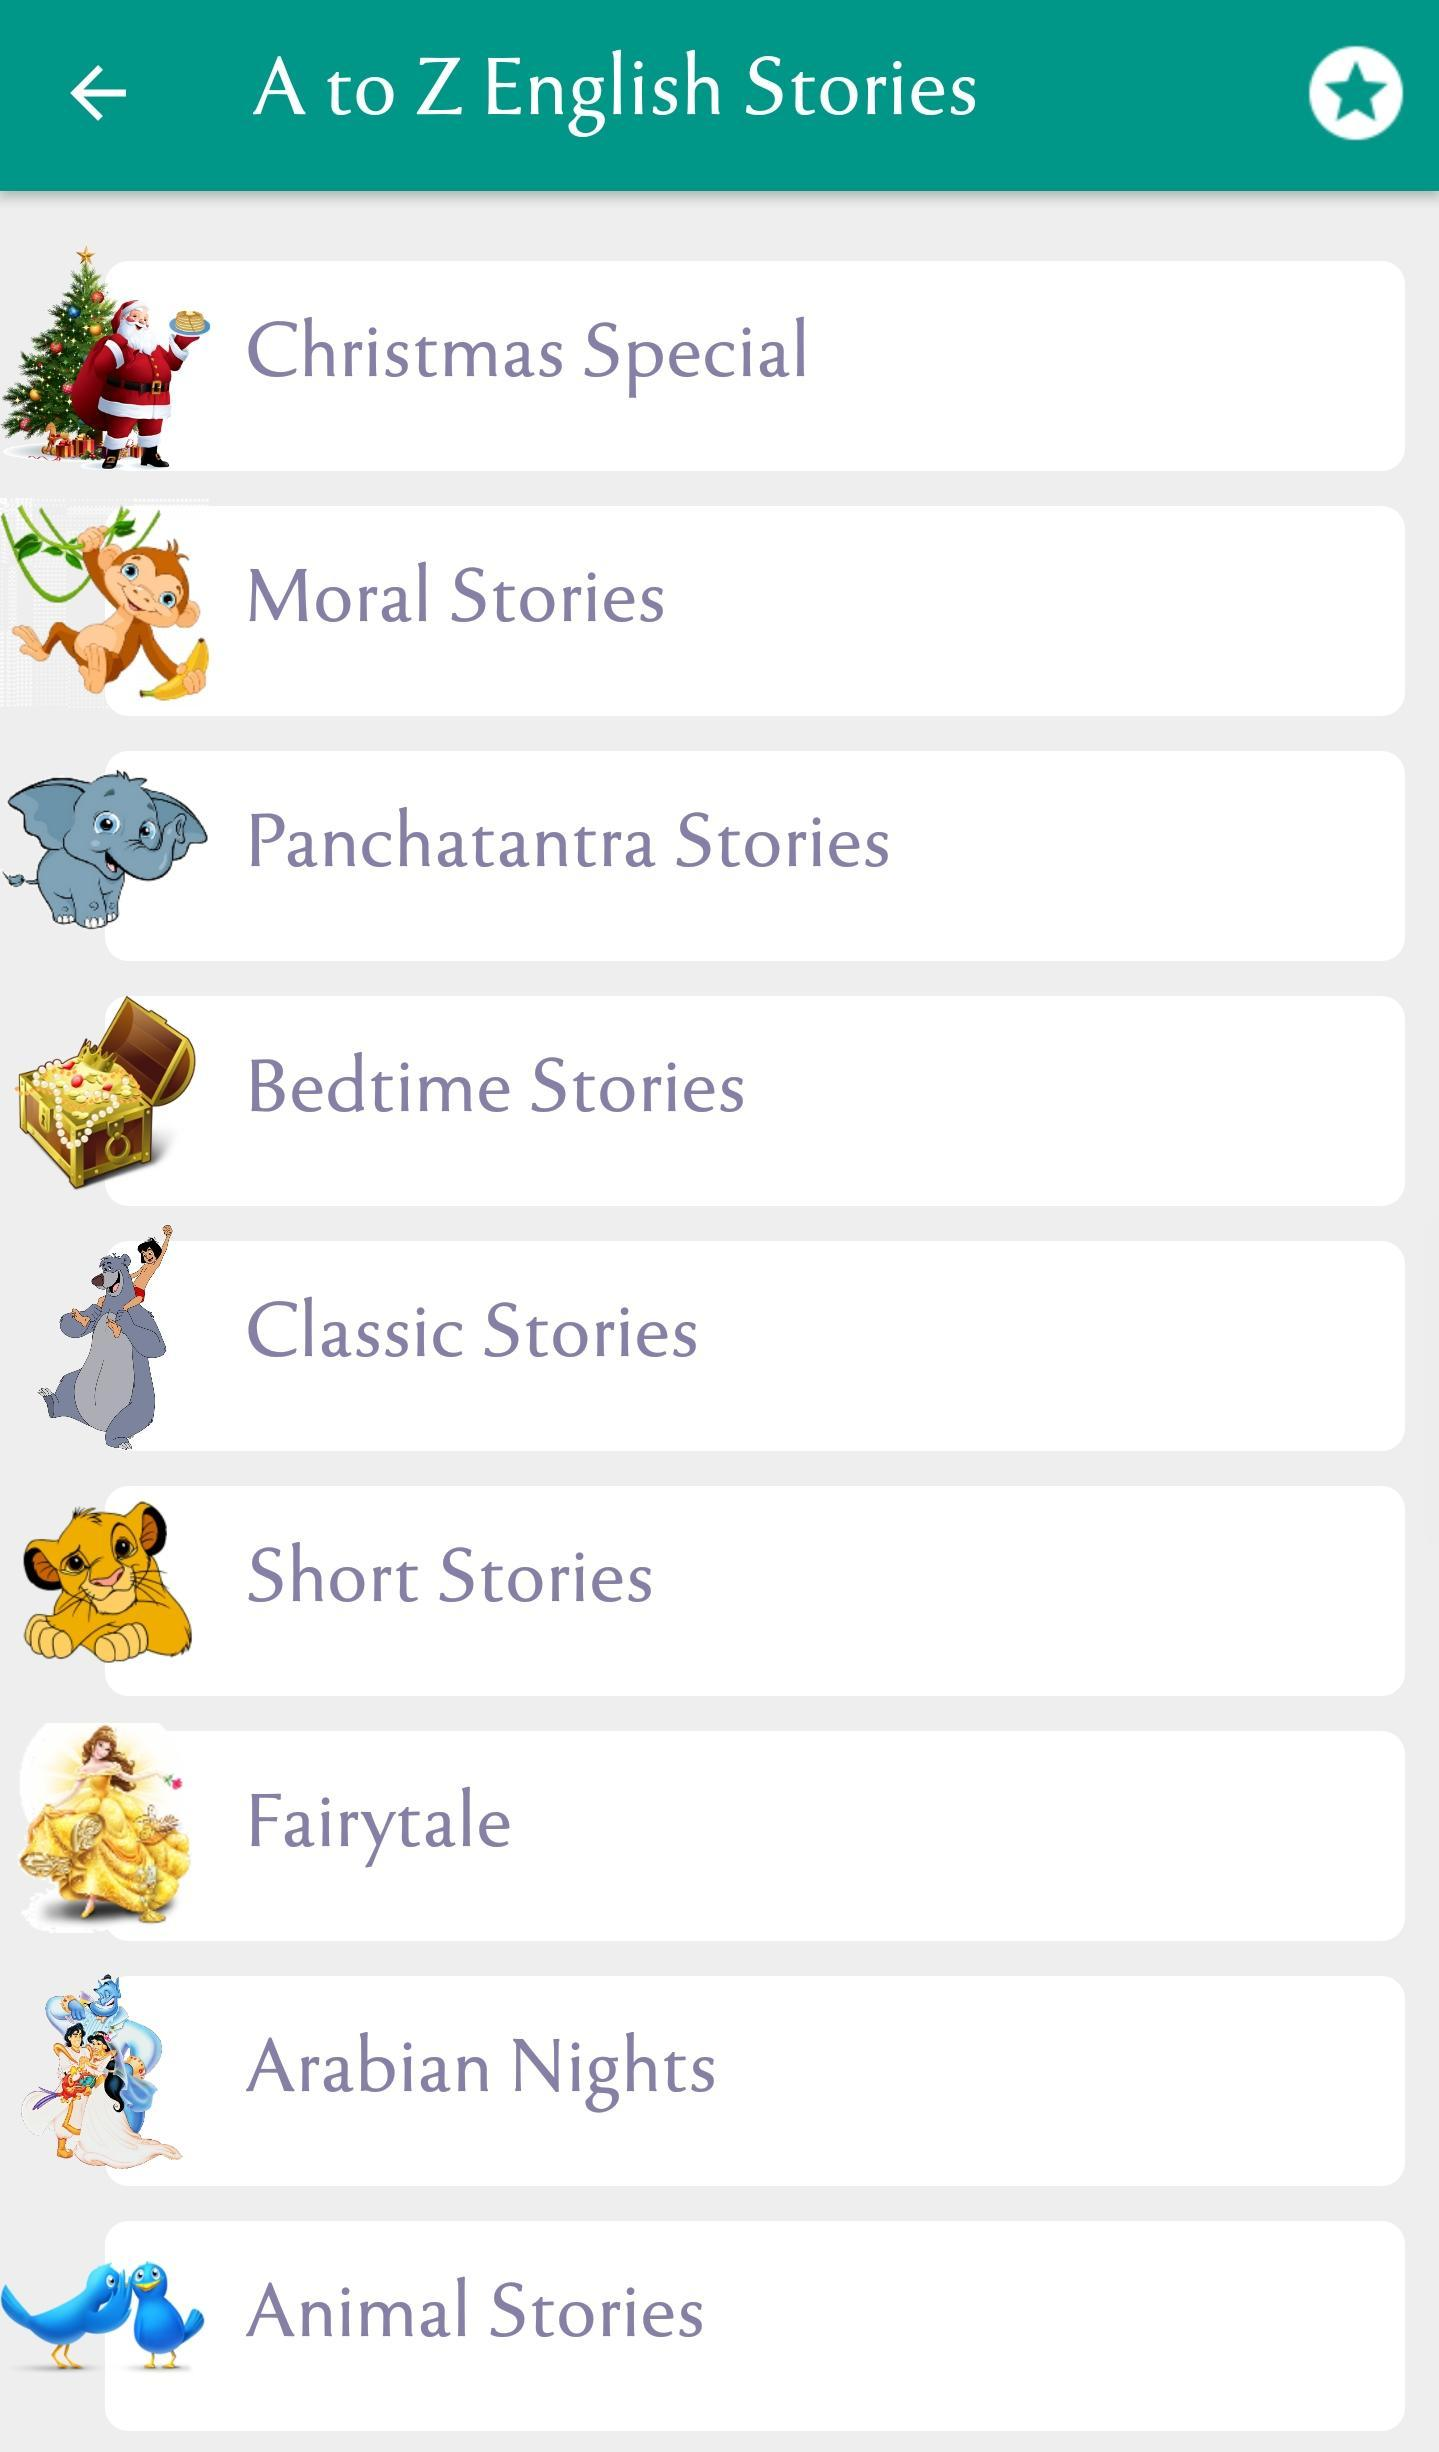 500+ Famous English Stories cho Android - Tải về APK